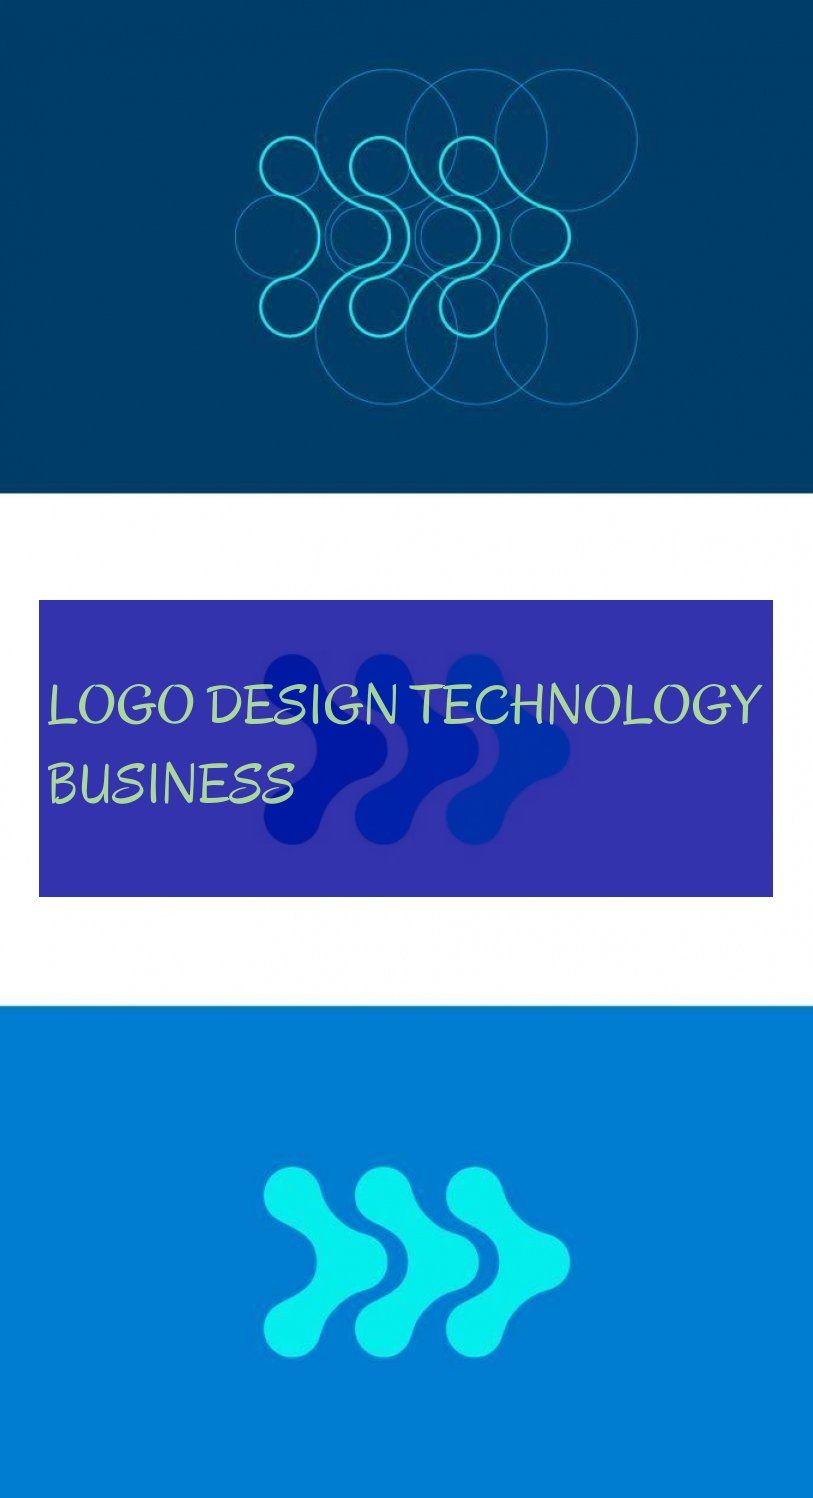 Entreprise De Technologie De Conception De Logo Logo Design Technology Business